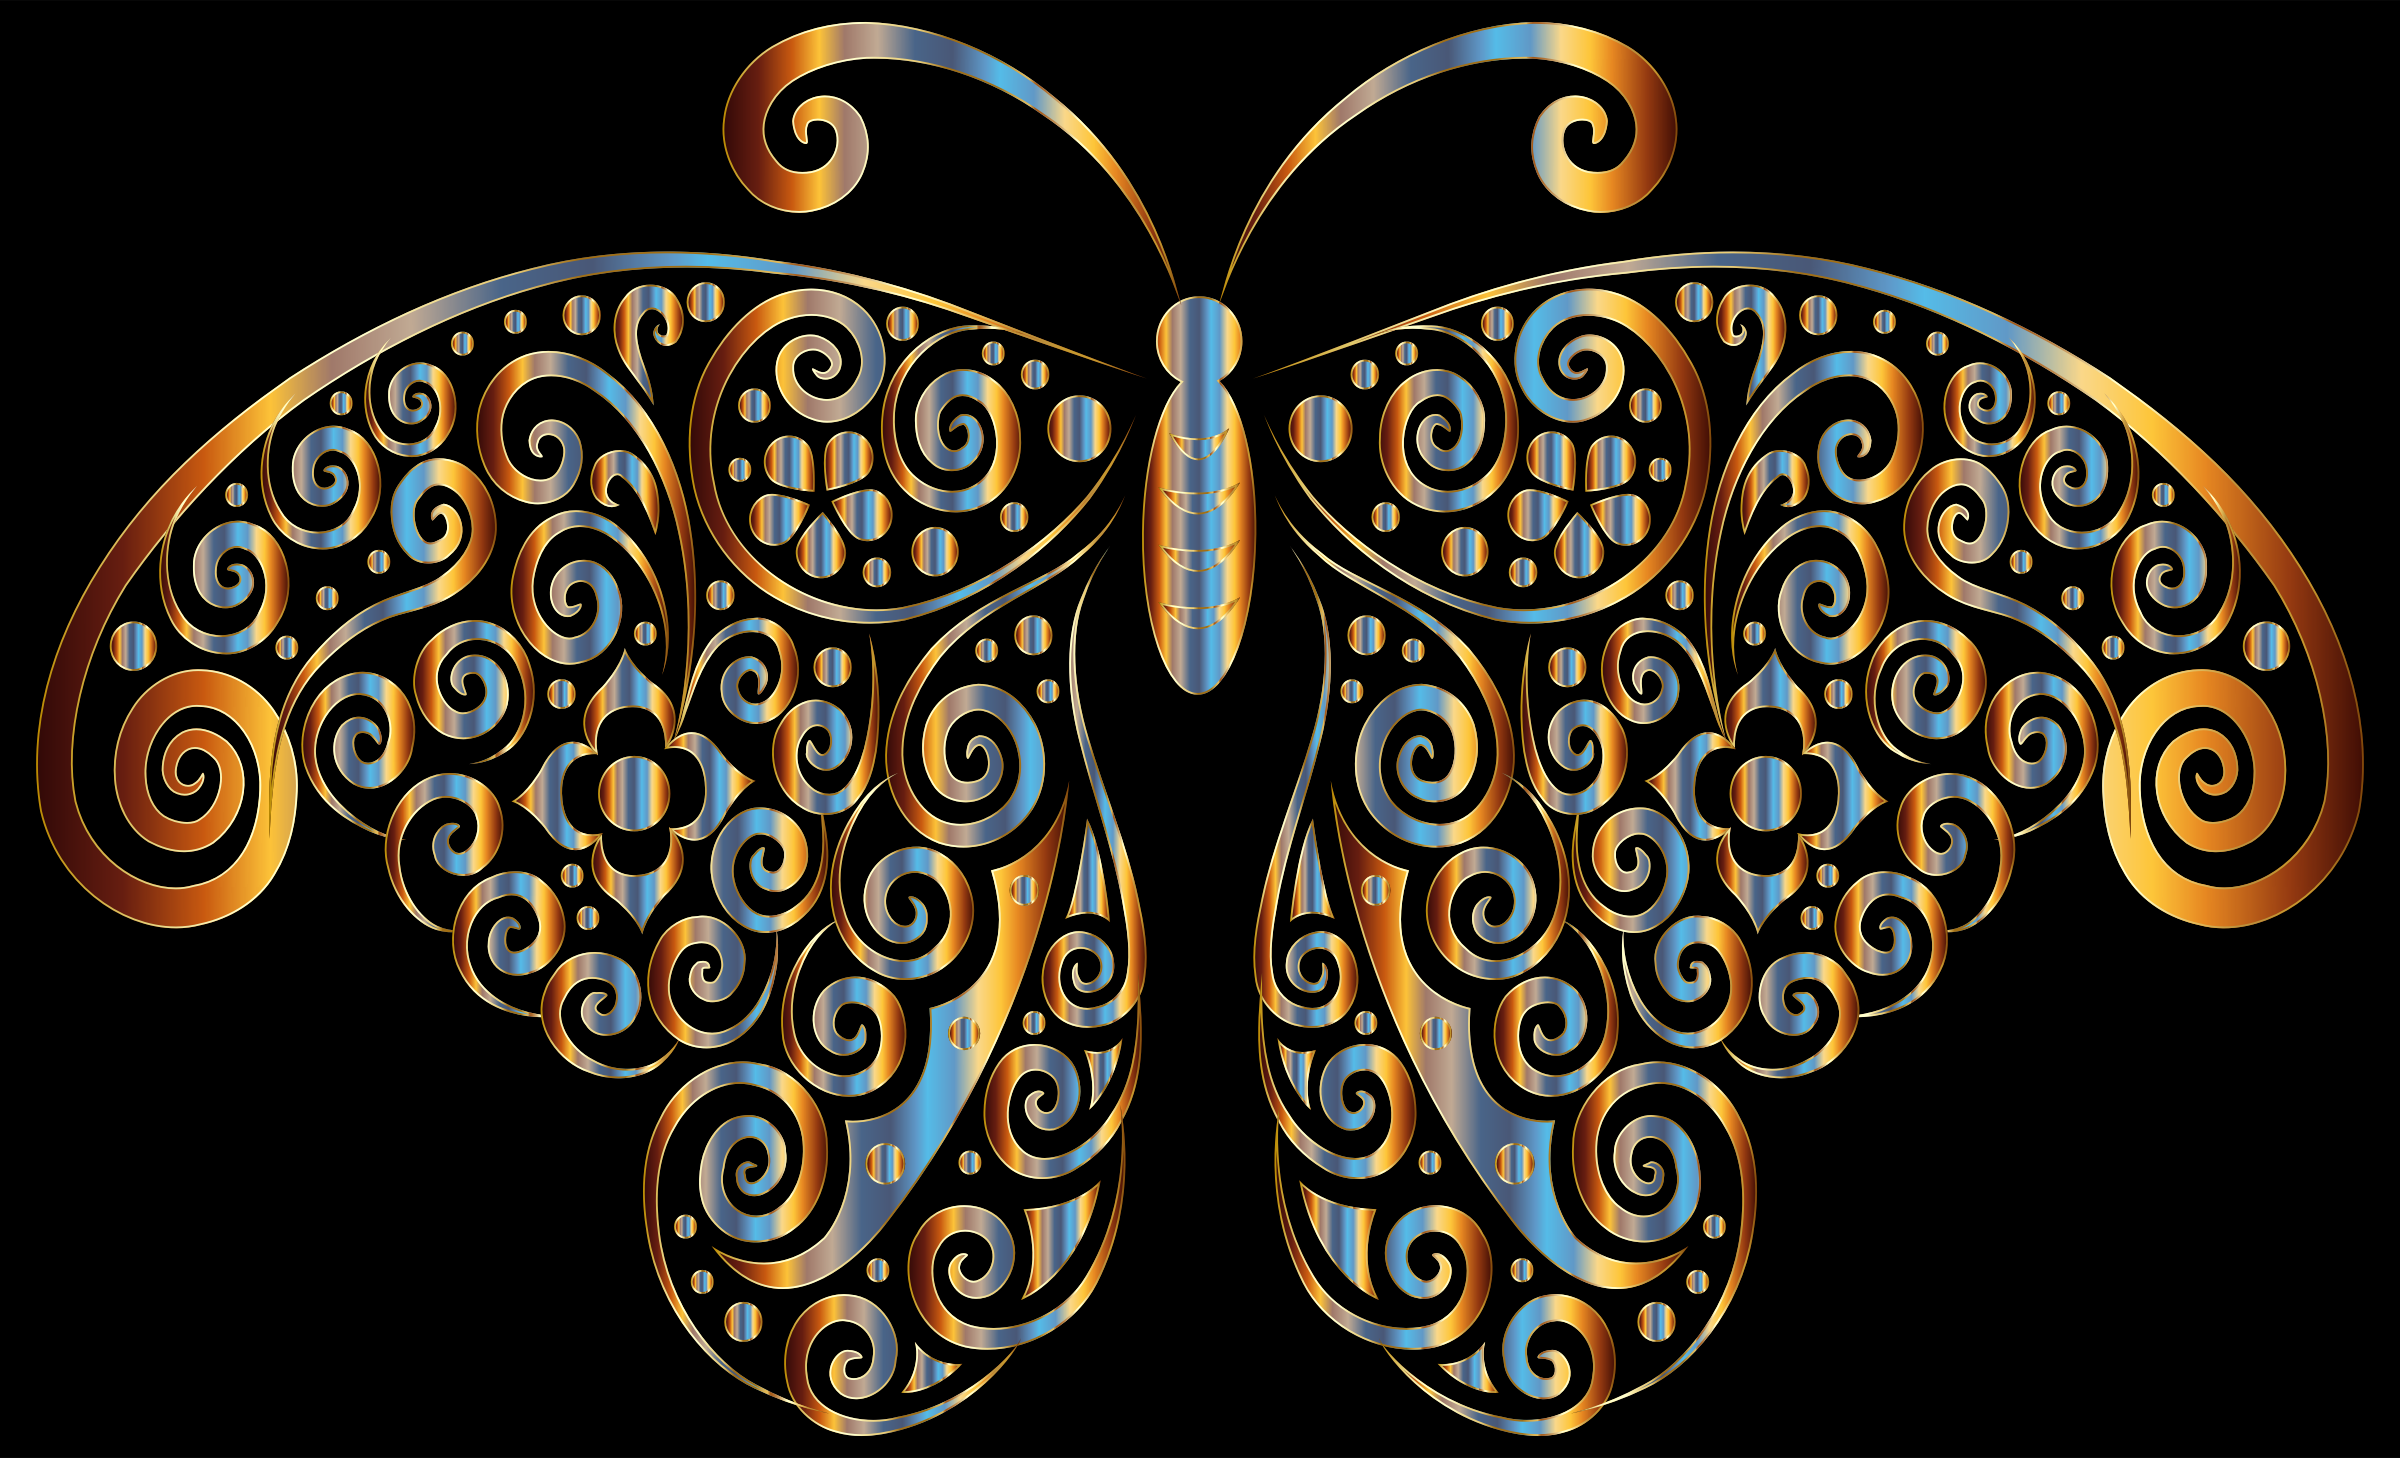 Prismatic Floral Flourish Butterfly Silhouette 5 by GDJ